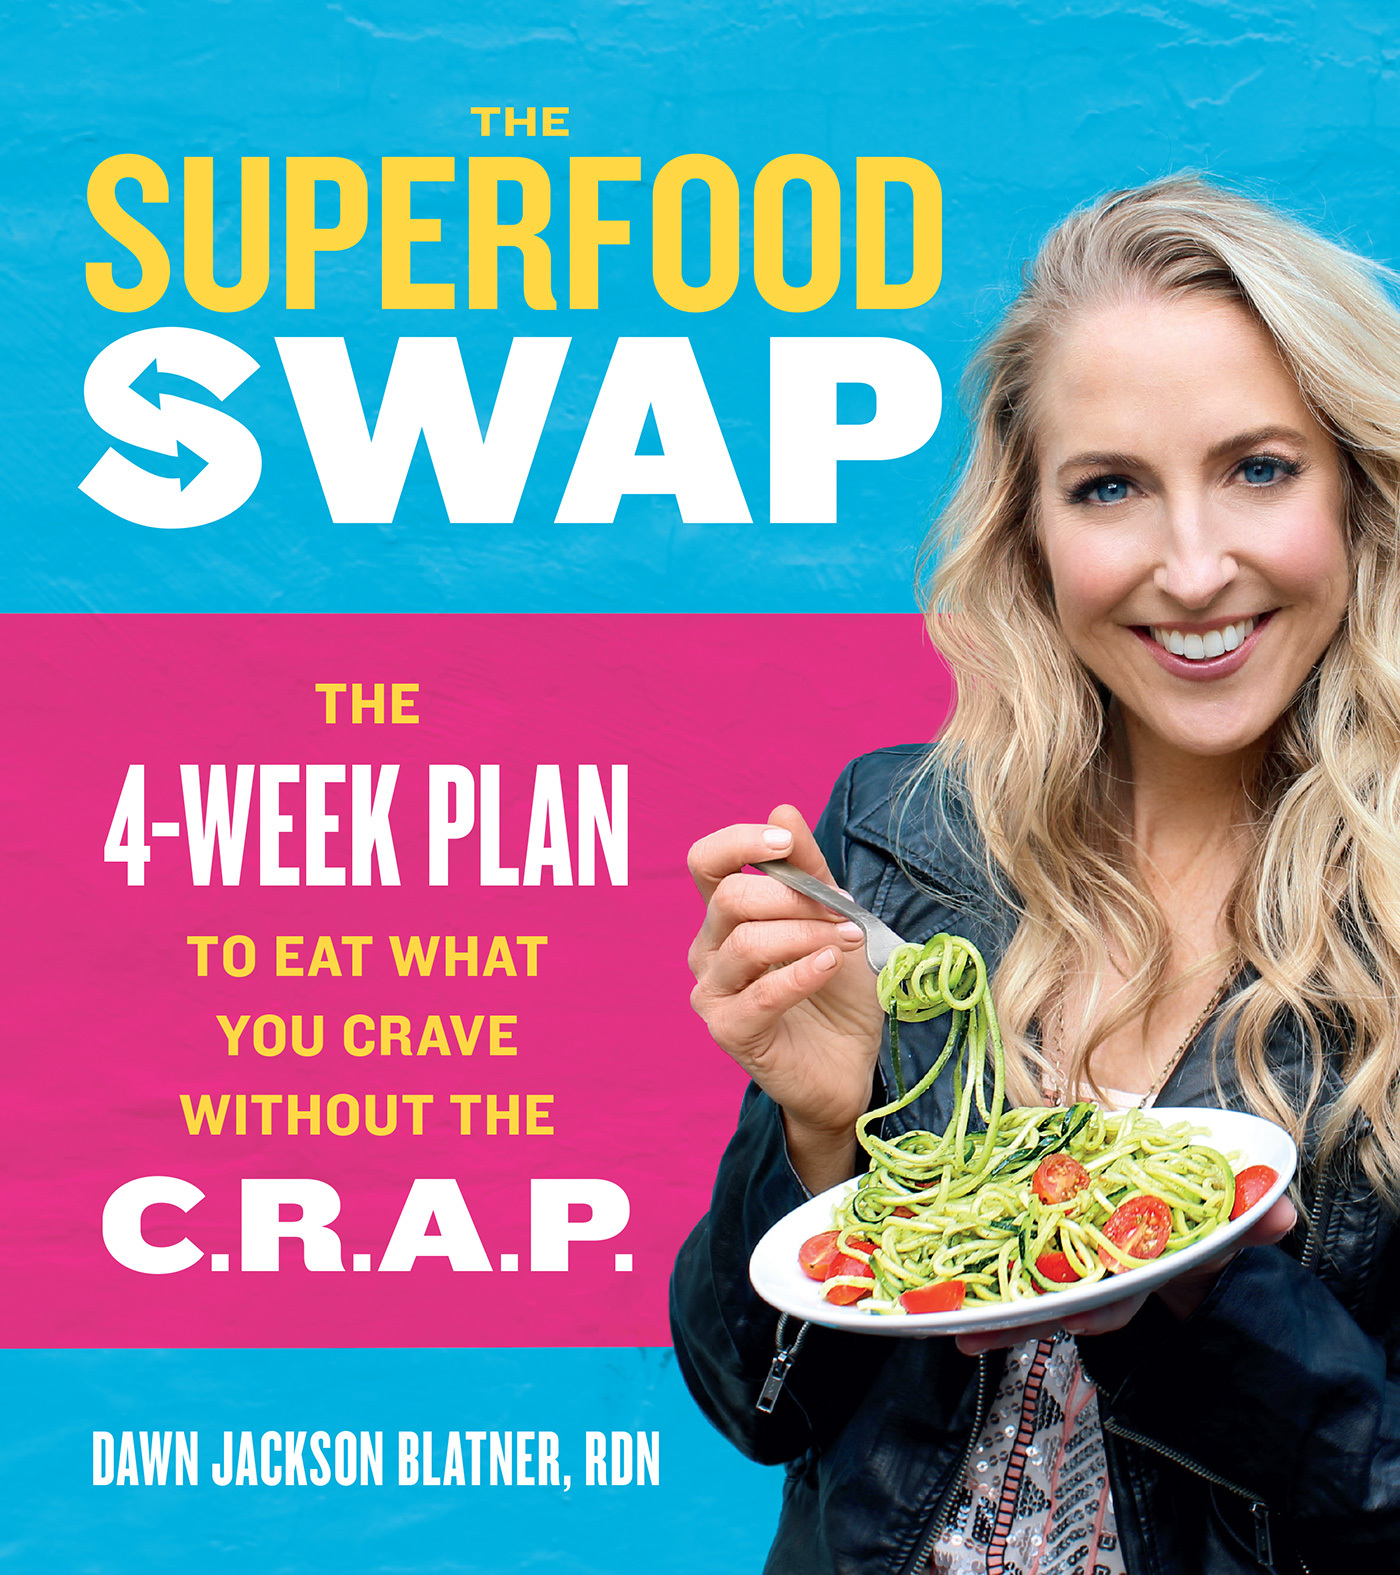 Superfood Swap